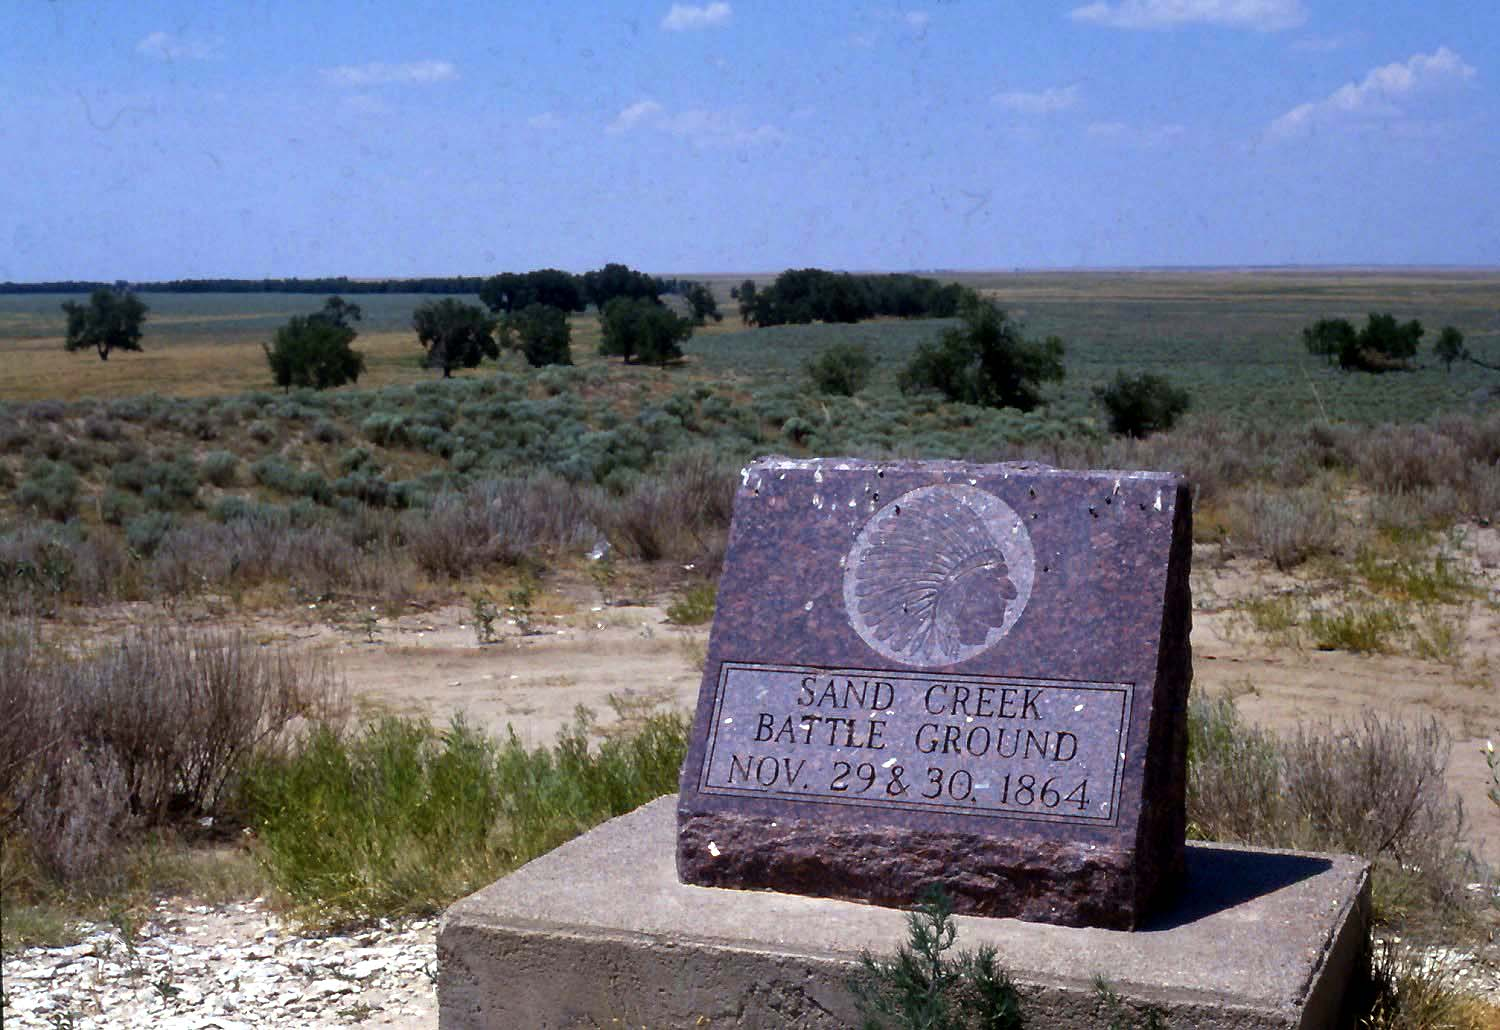 Billy Stratton: The soldiers who refused to take part in the Sand Creek Massacre